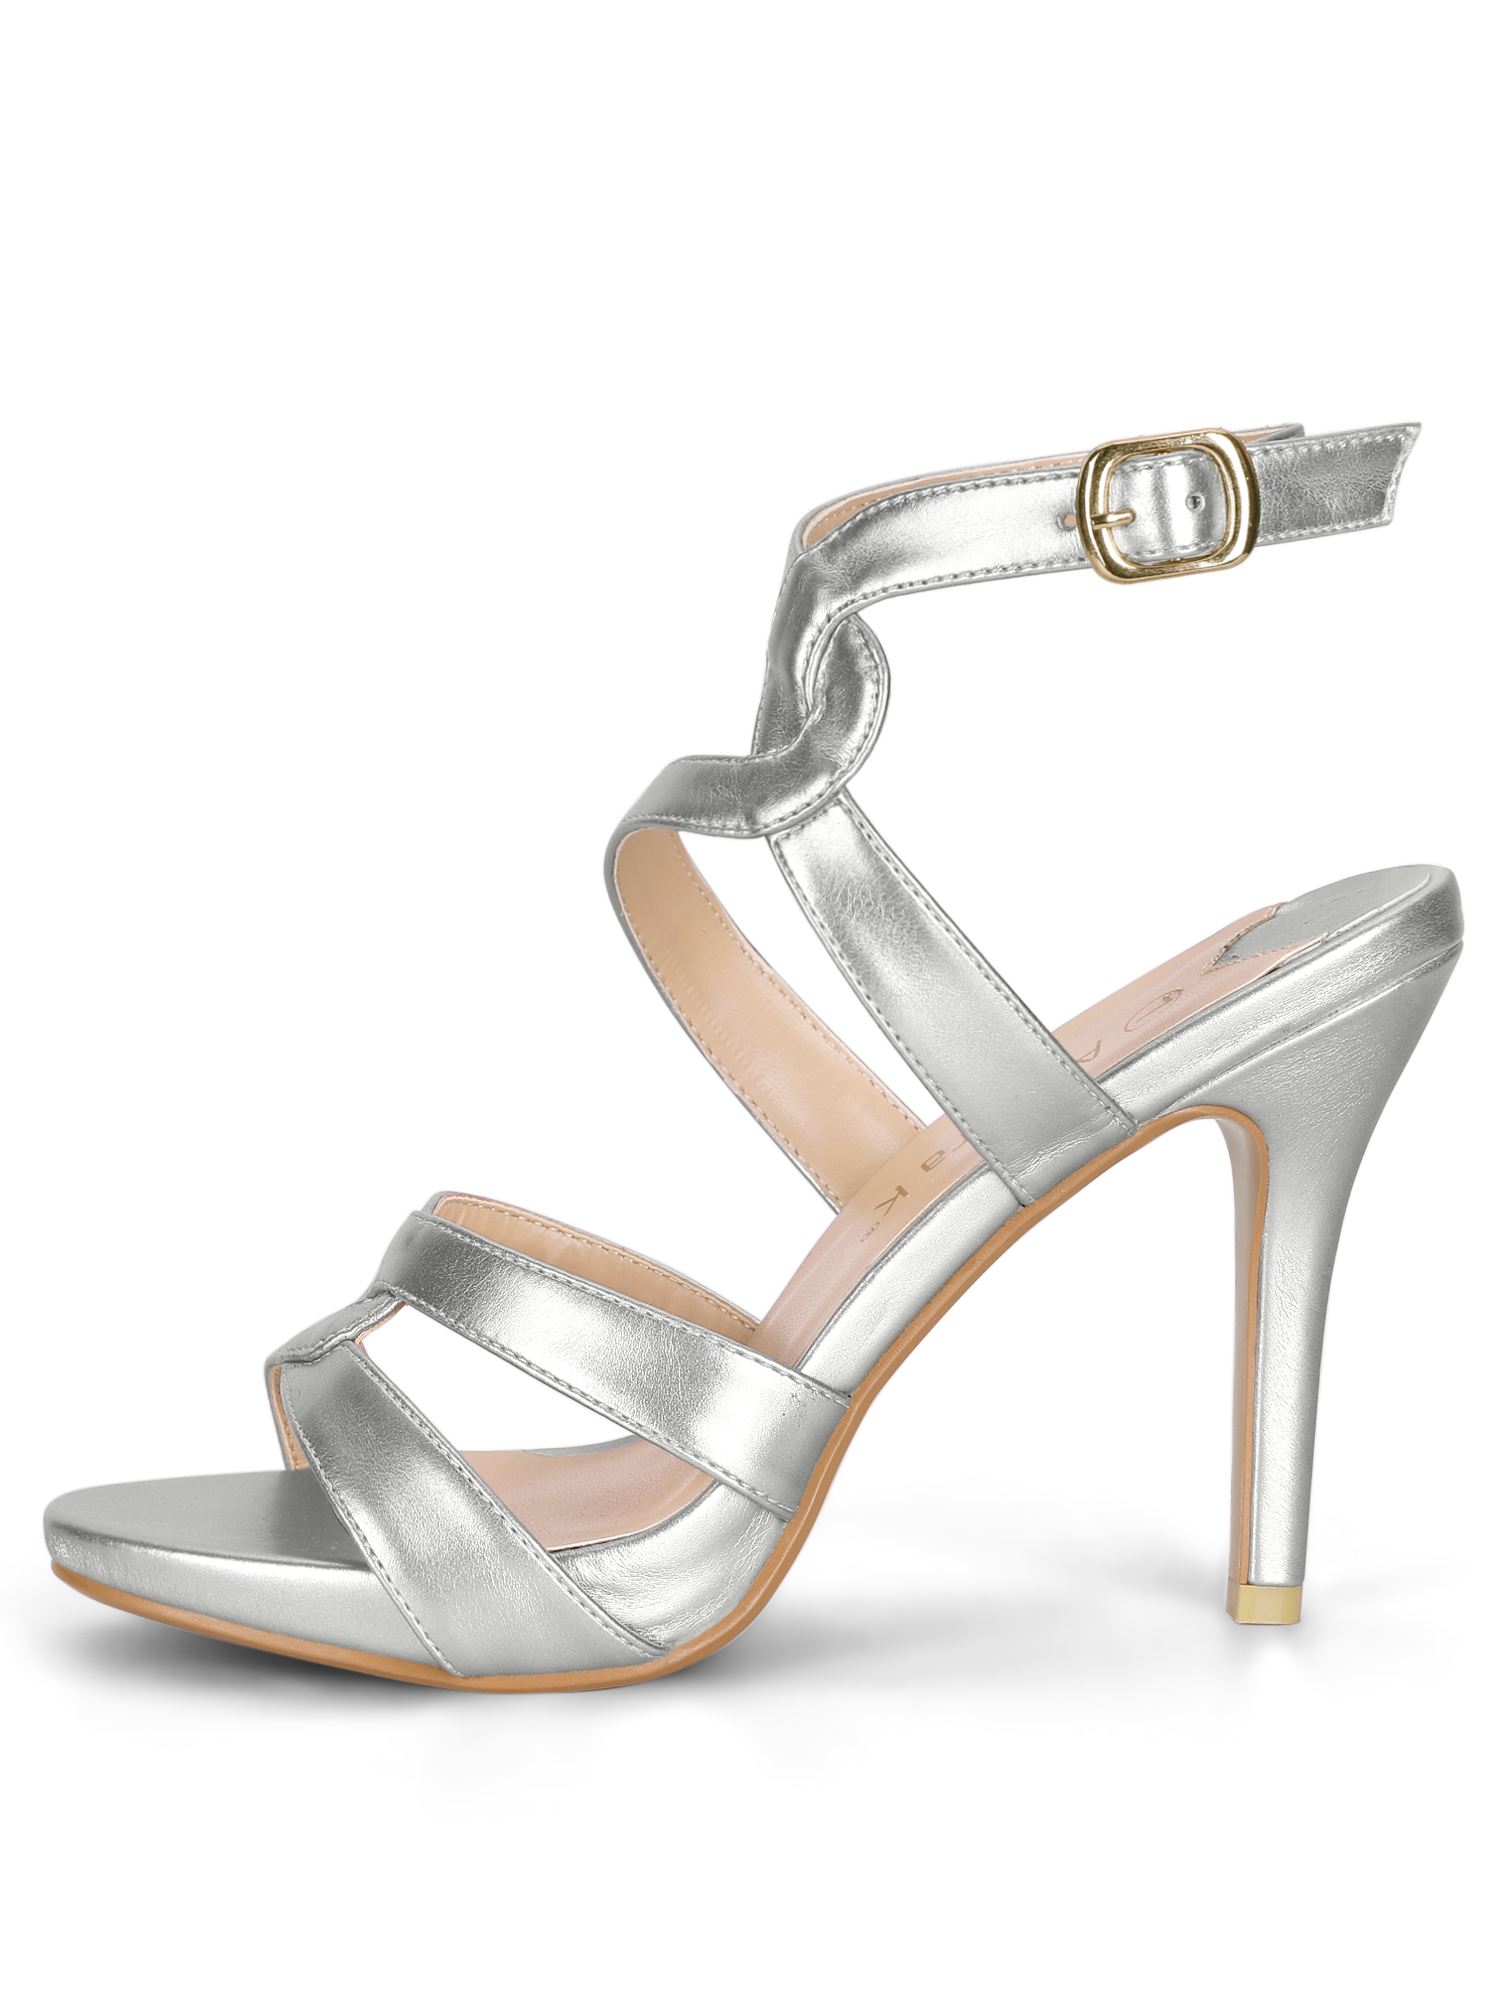 Women's Strappy Platform Stiletto Heel Sandals Silver (Size 5.5)